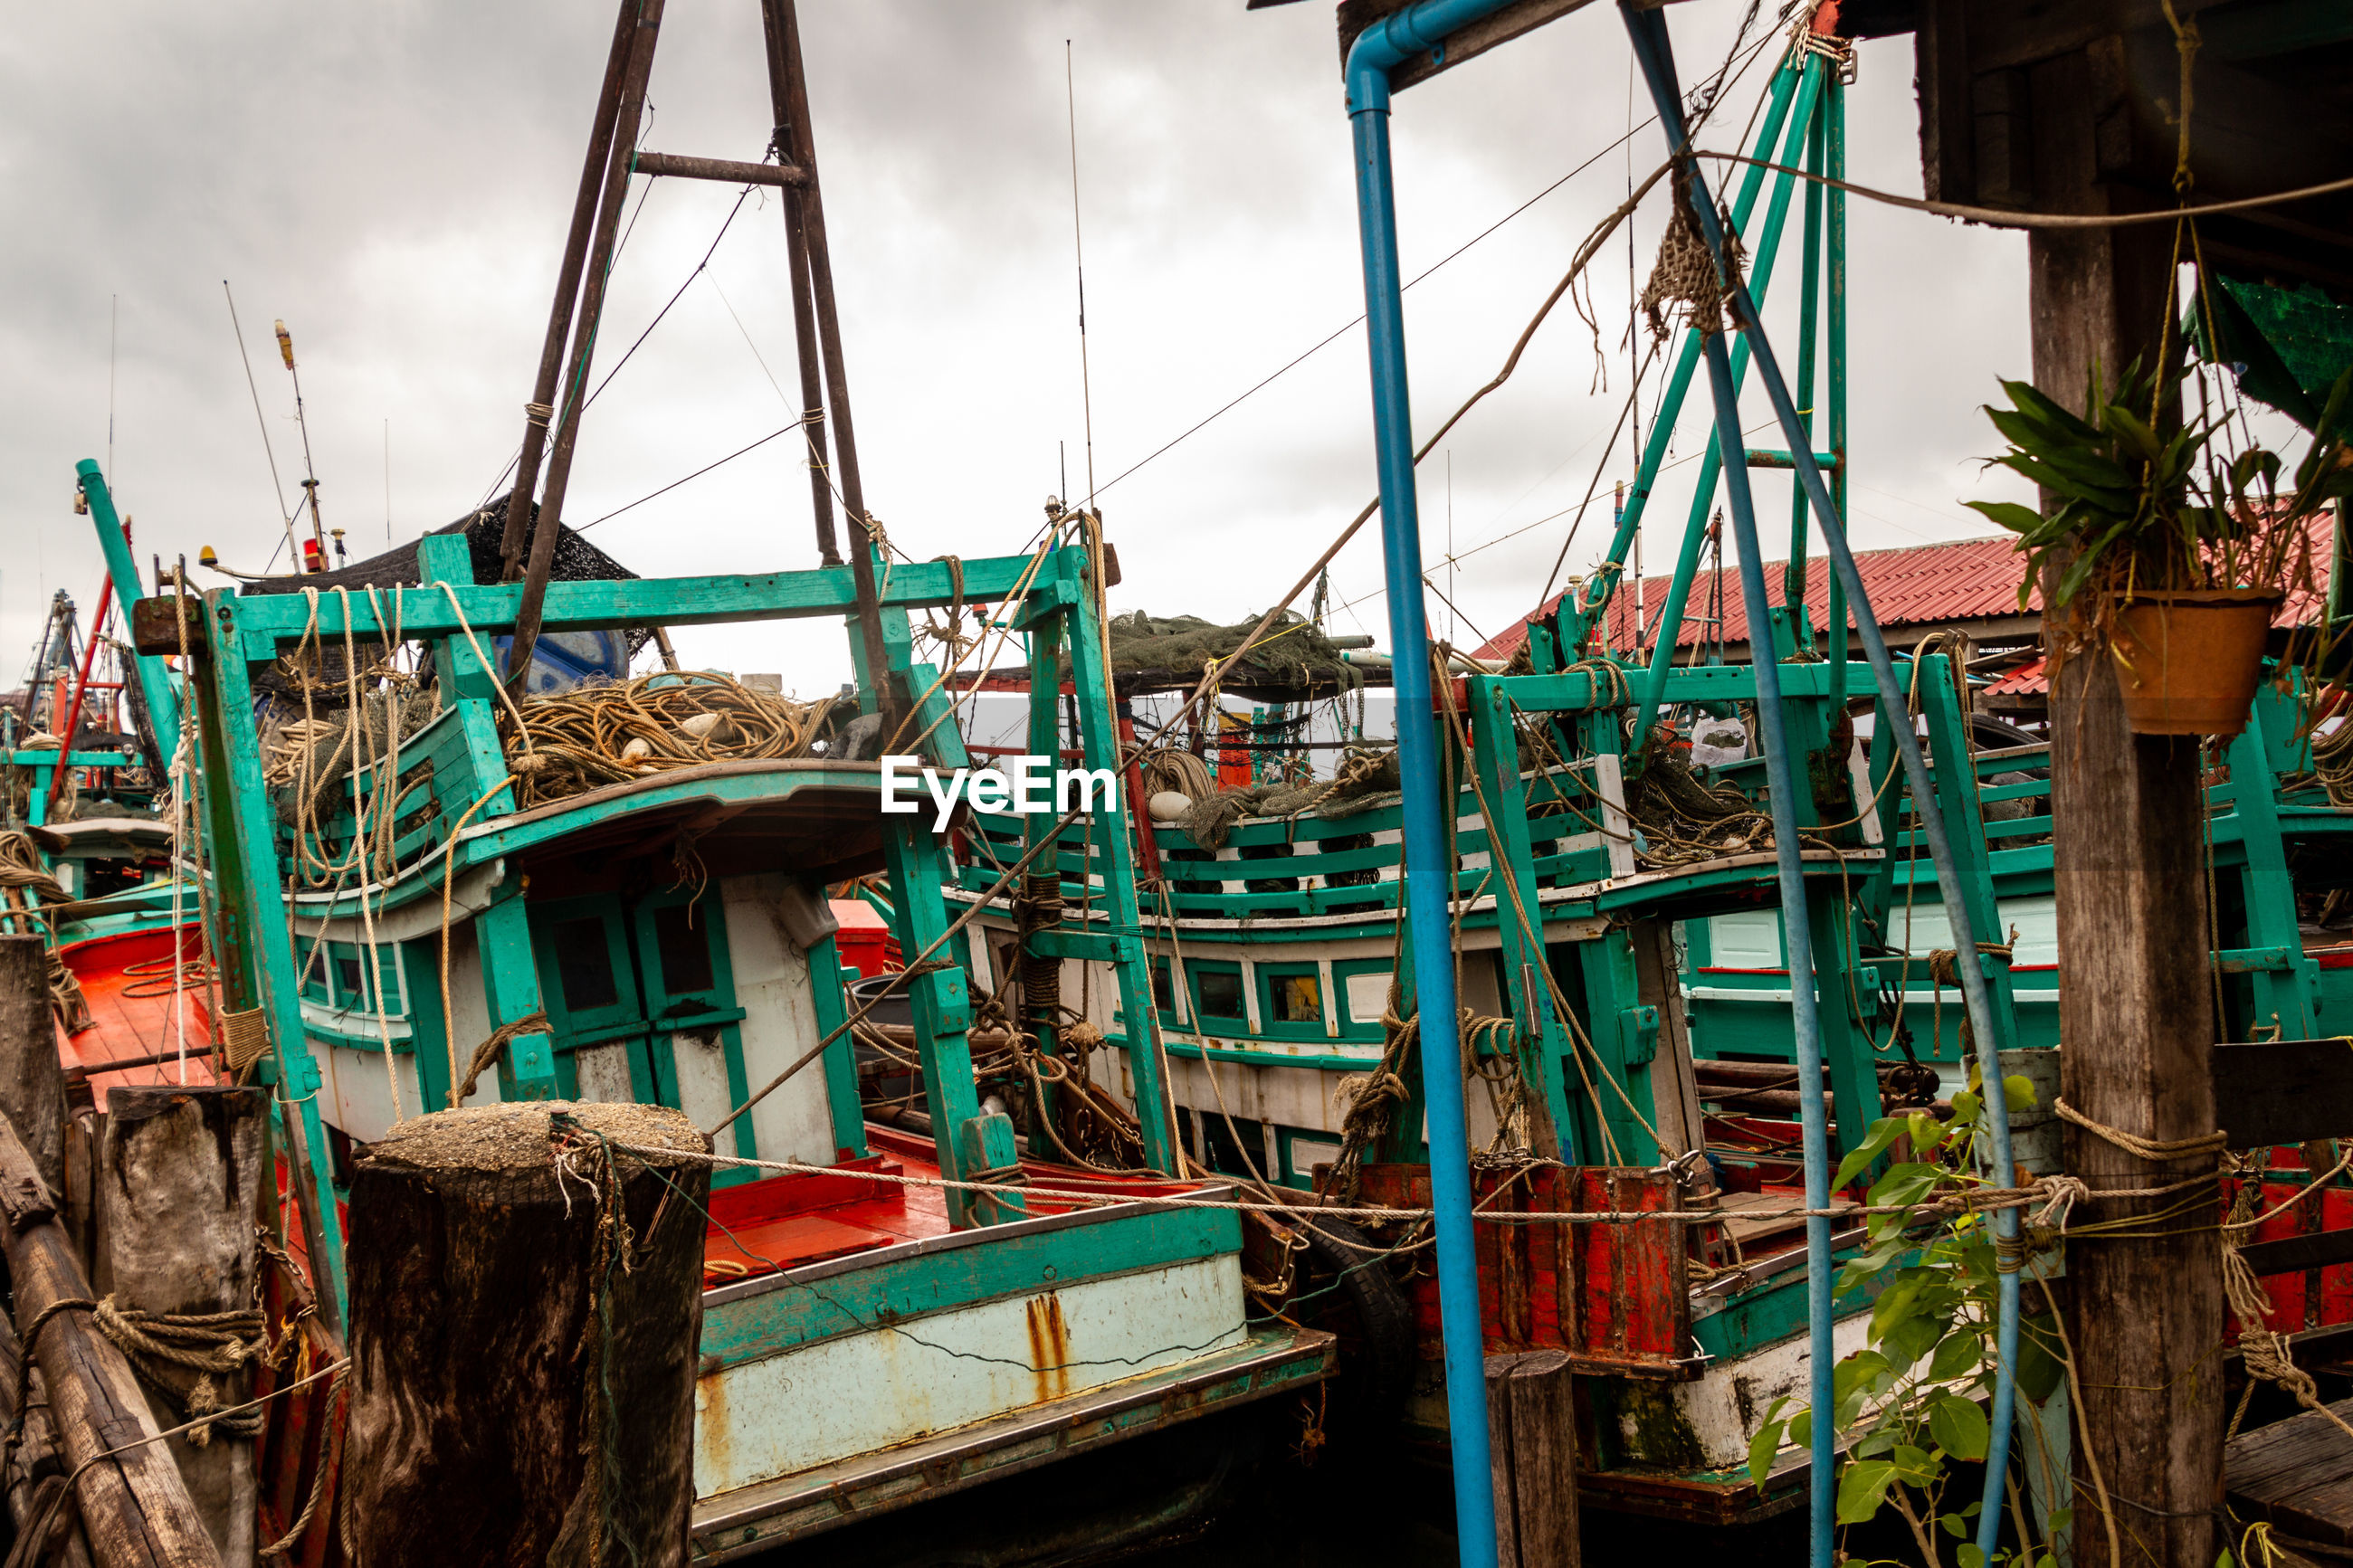 FISHING BOATS MOORED IN WATER